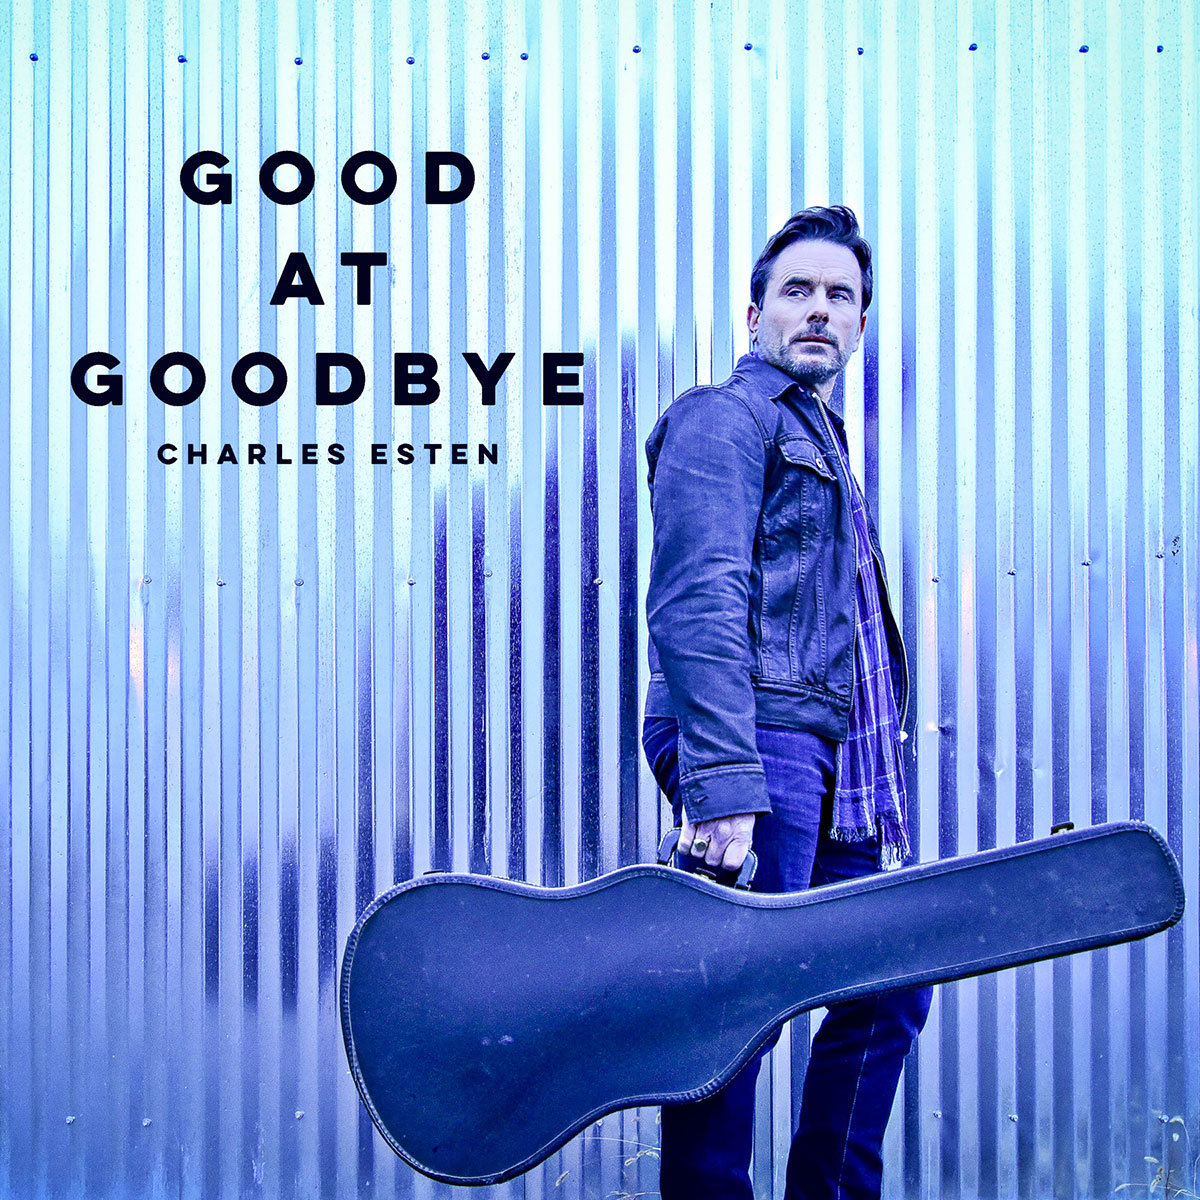 Good at Goodbye